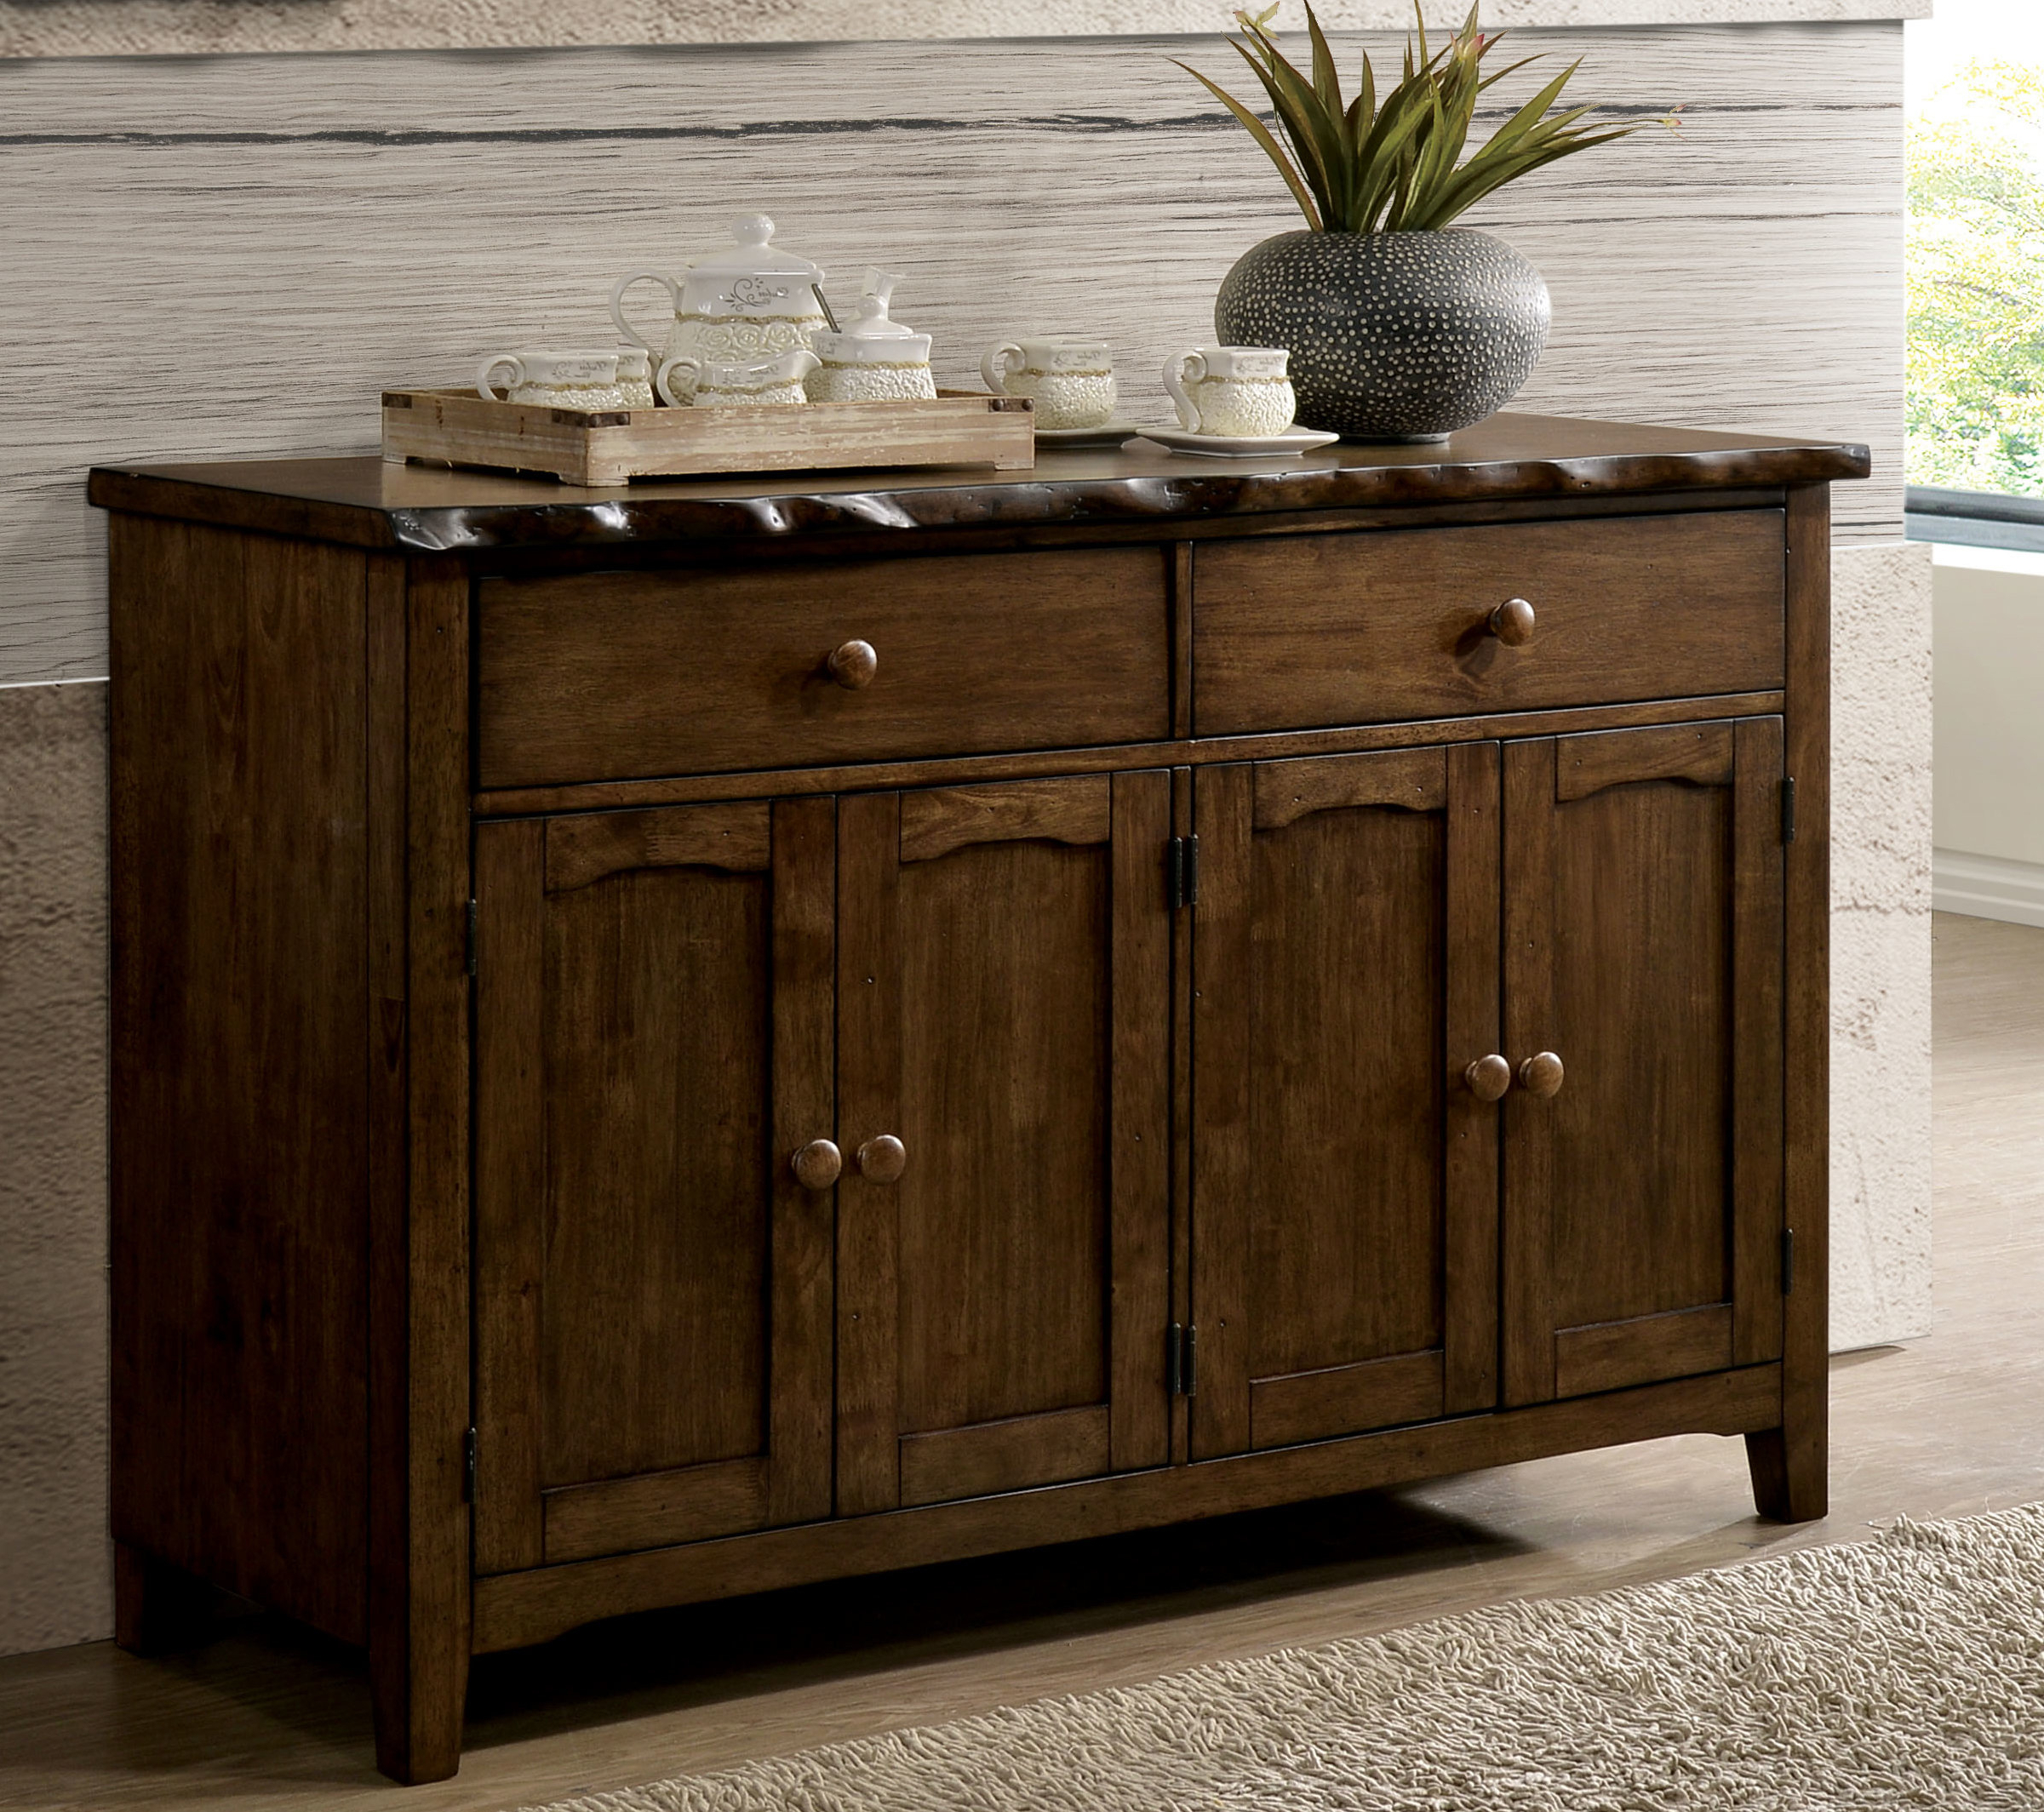 Preferred Rawson Sideboard Intended For Seiling Sideboards (View 5 of 20)